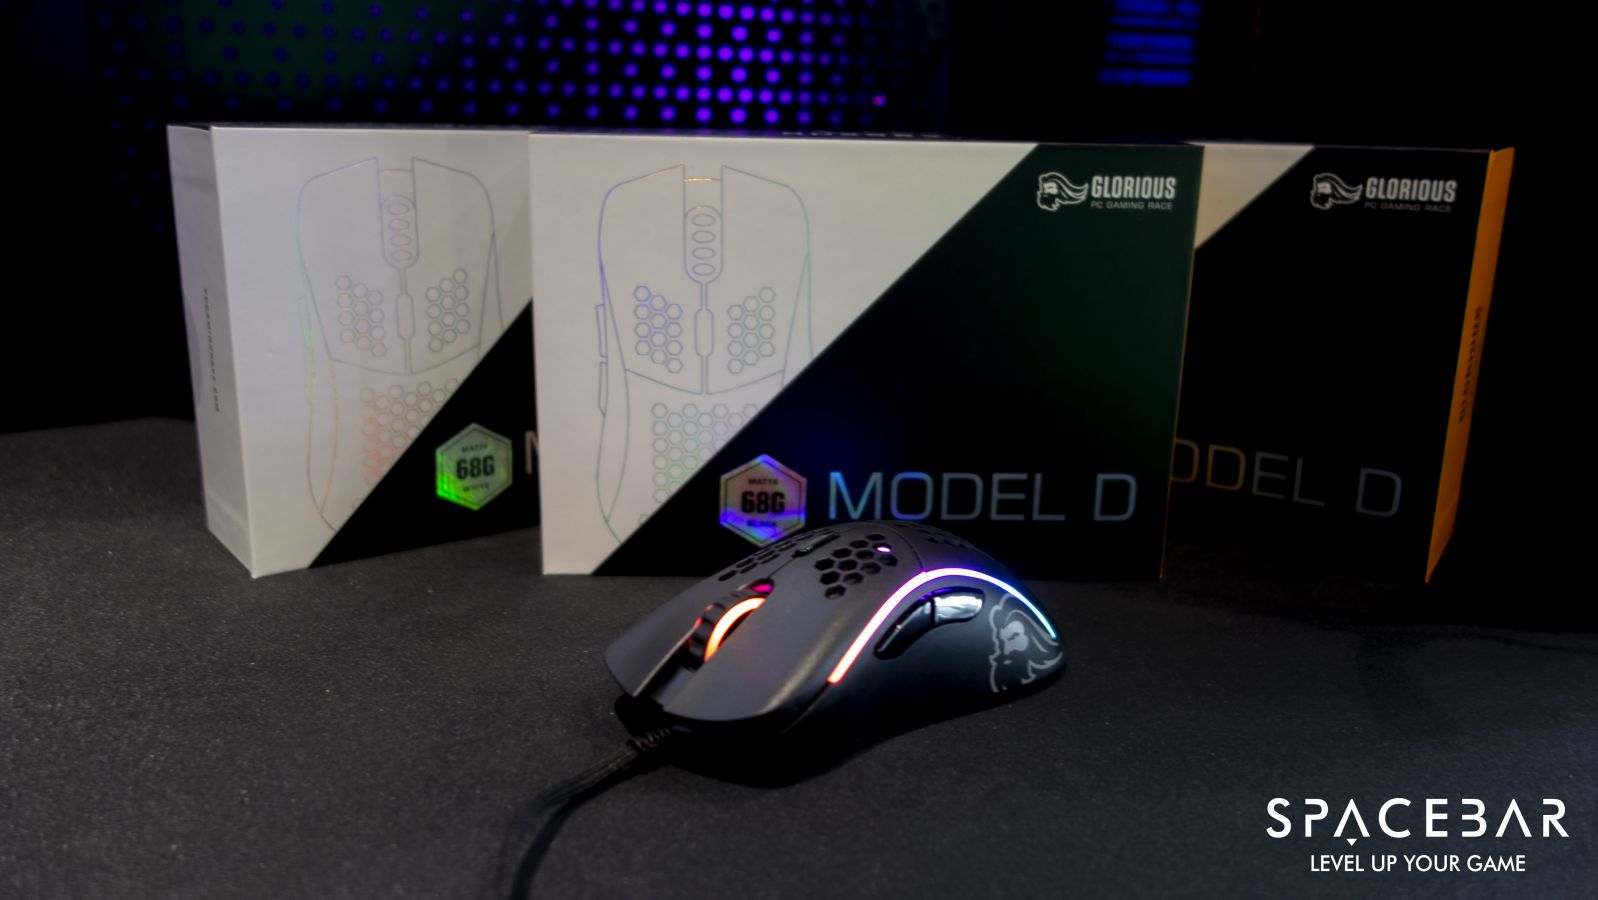 Glorious Model D Gaming Mouse